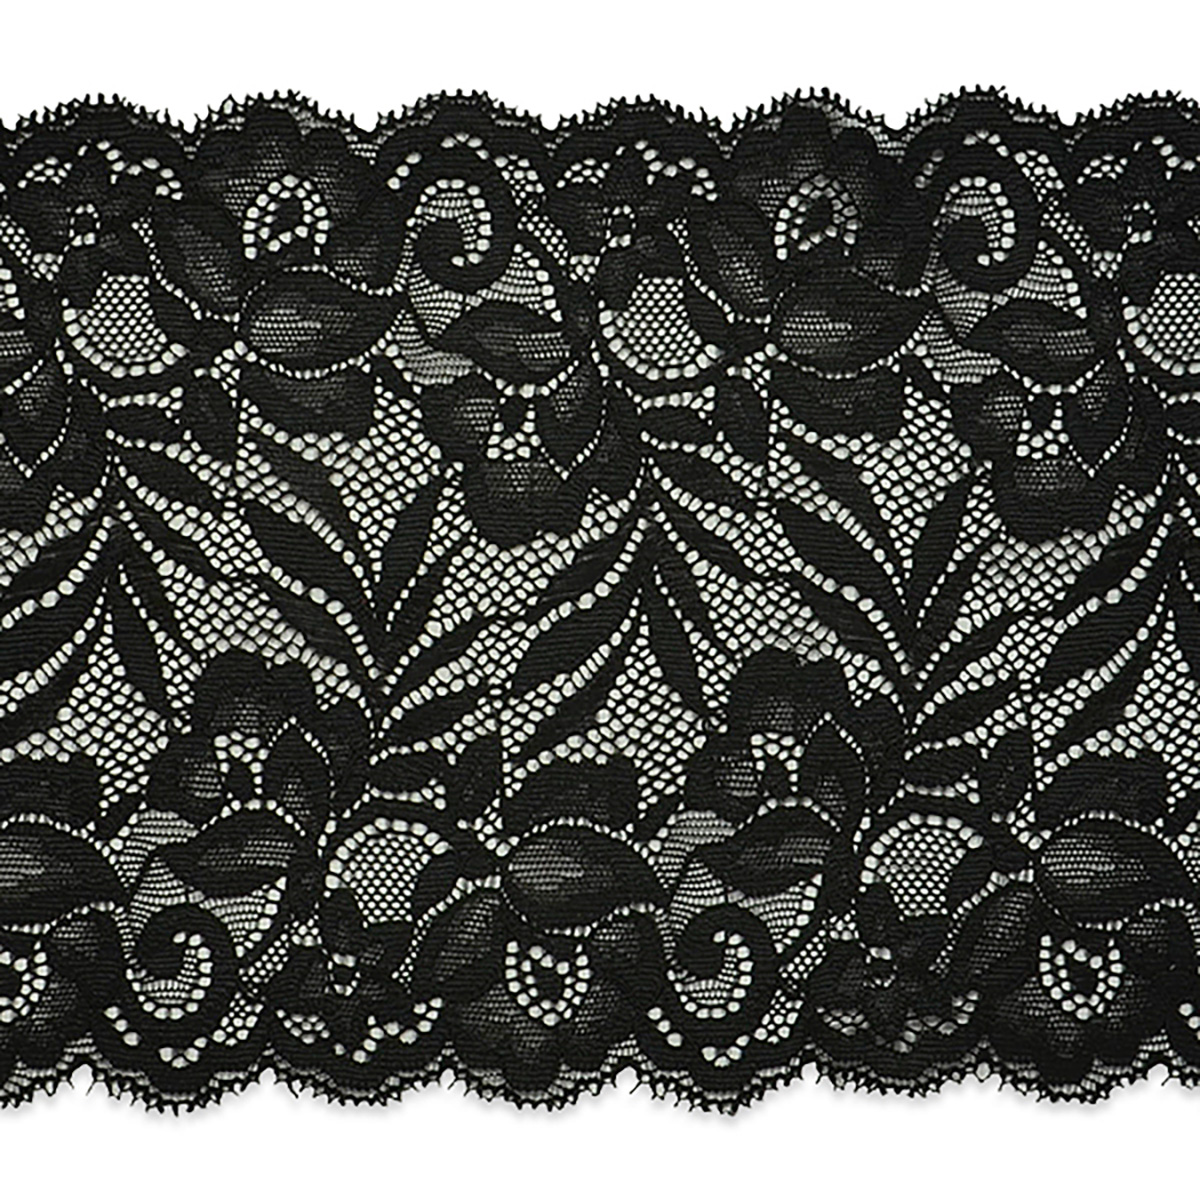 Brea 5 1/2'' Stretch Raschel Lace Trim Black (Precut 10 Yard)